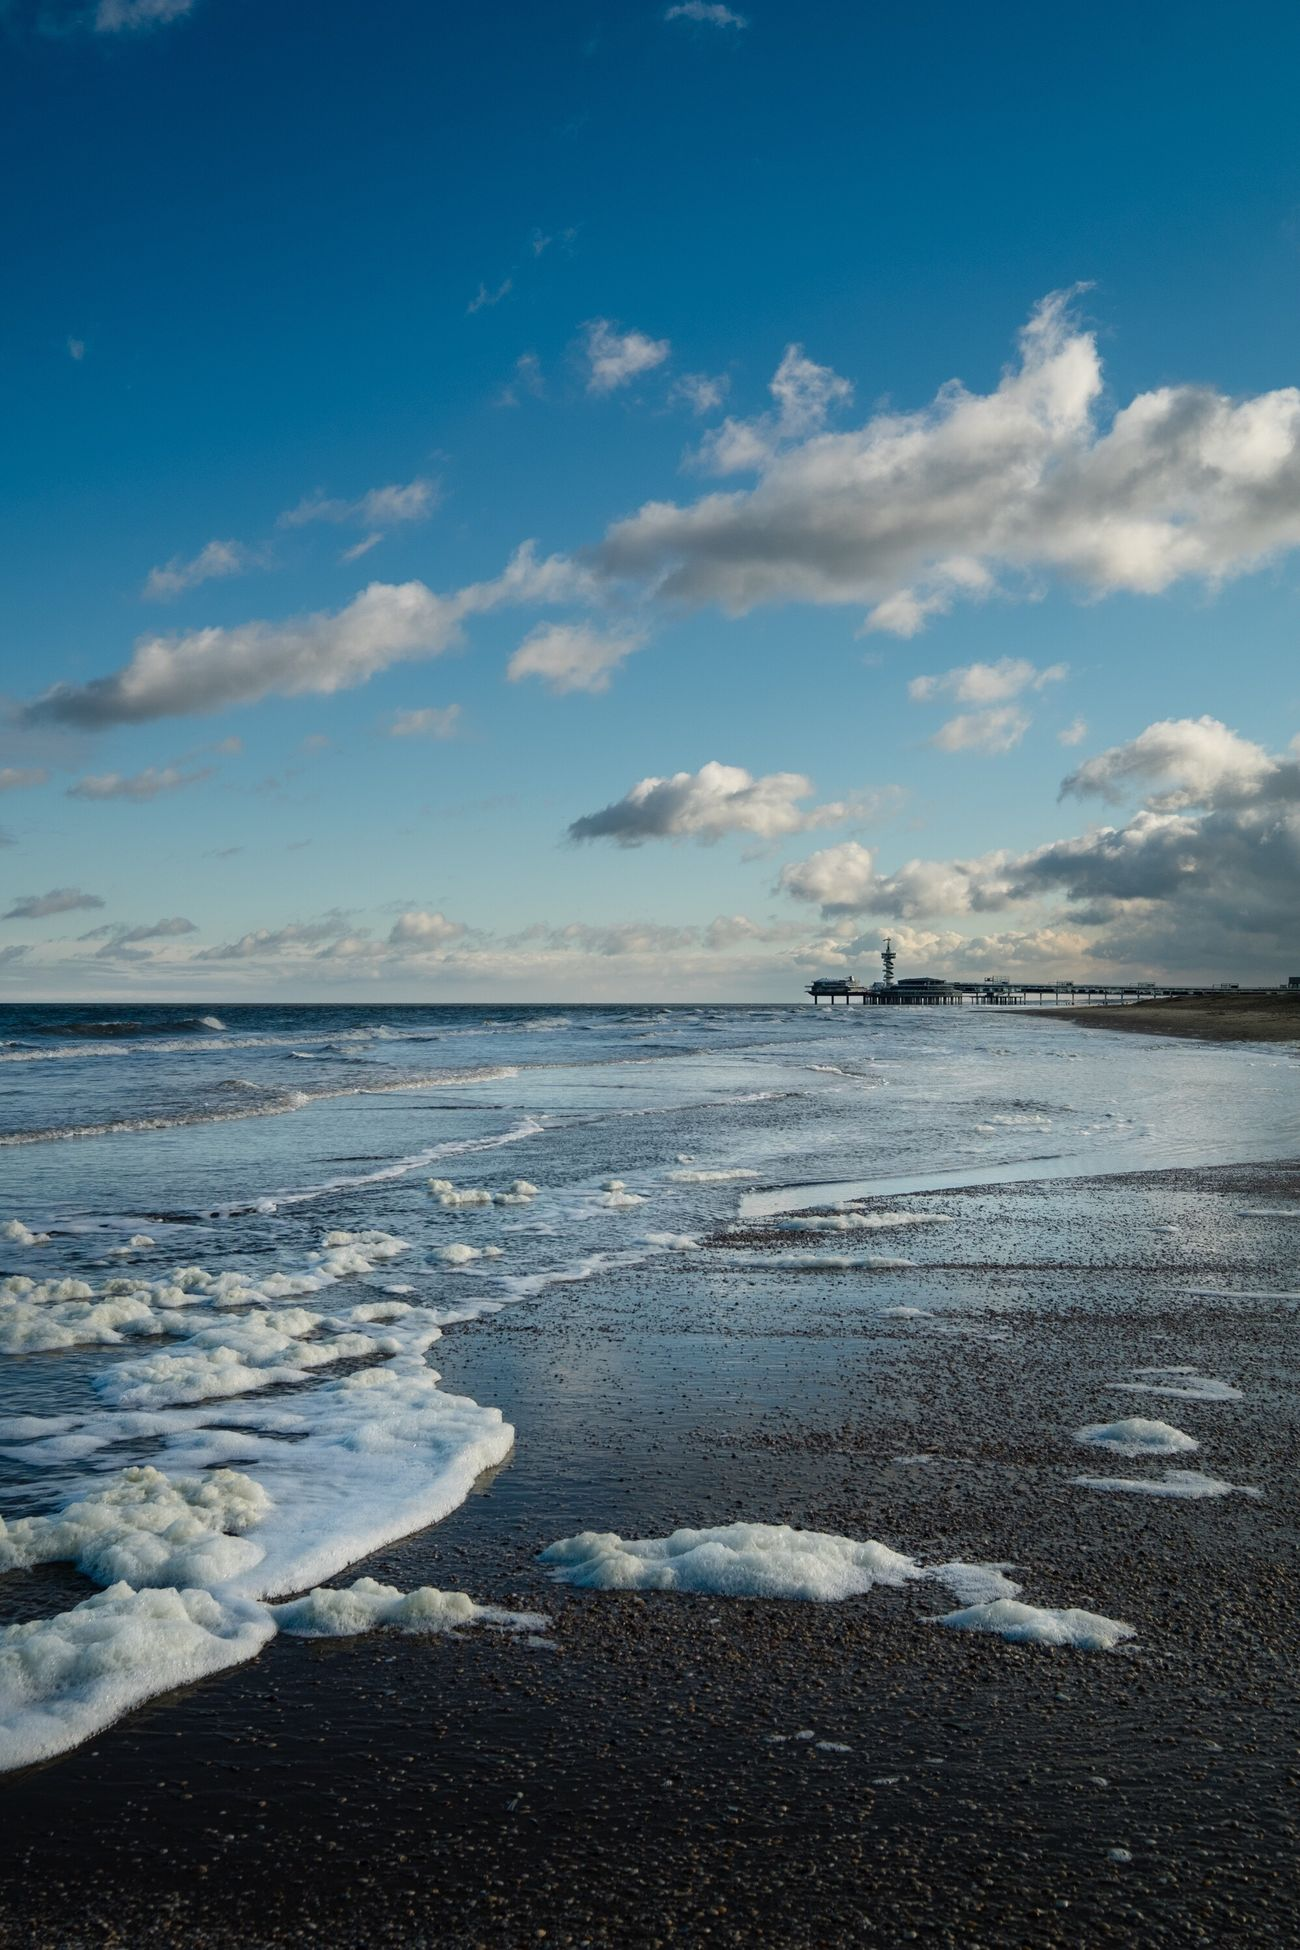 On the North Sea, the Netherlands Water Sea Tranquil Scene Scenics Tranquility Sky Beauty In Nature Beach Cloud Nature Seascape Blue Calm Idyllic Cloud - Sky Majestic Shore Coastline Wave Ocean EyeEm Best Shots Fujifilm_xseries The Netherlands Landscape Holiday